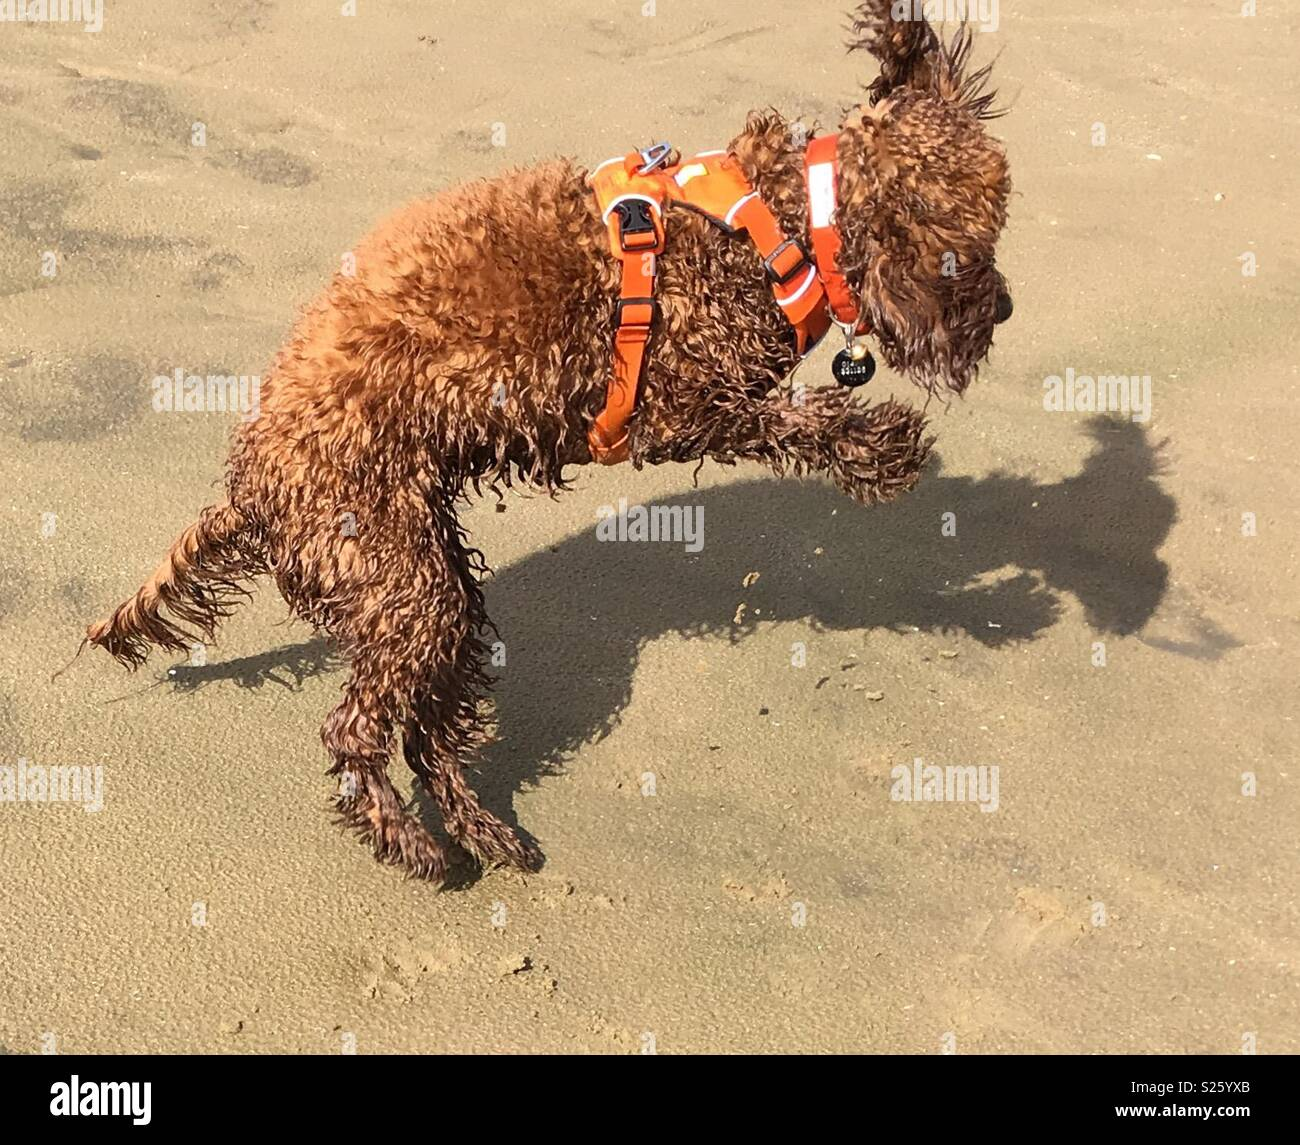 Leaping Cockerpoo and shadow on beach - Stock Image